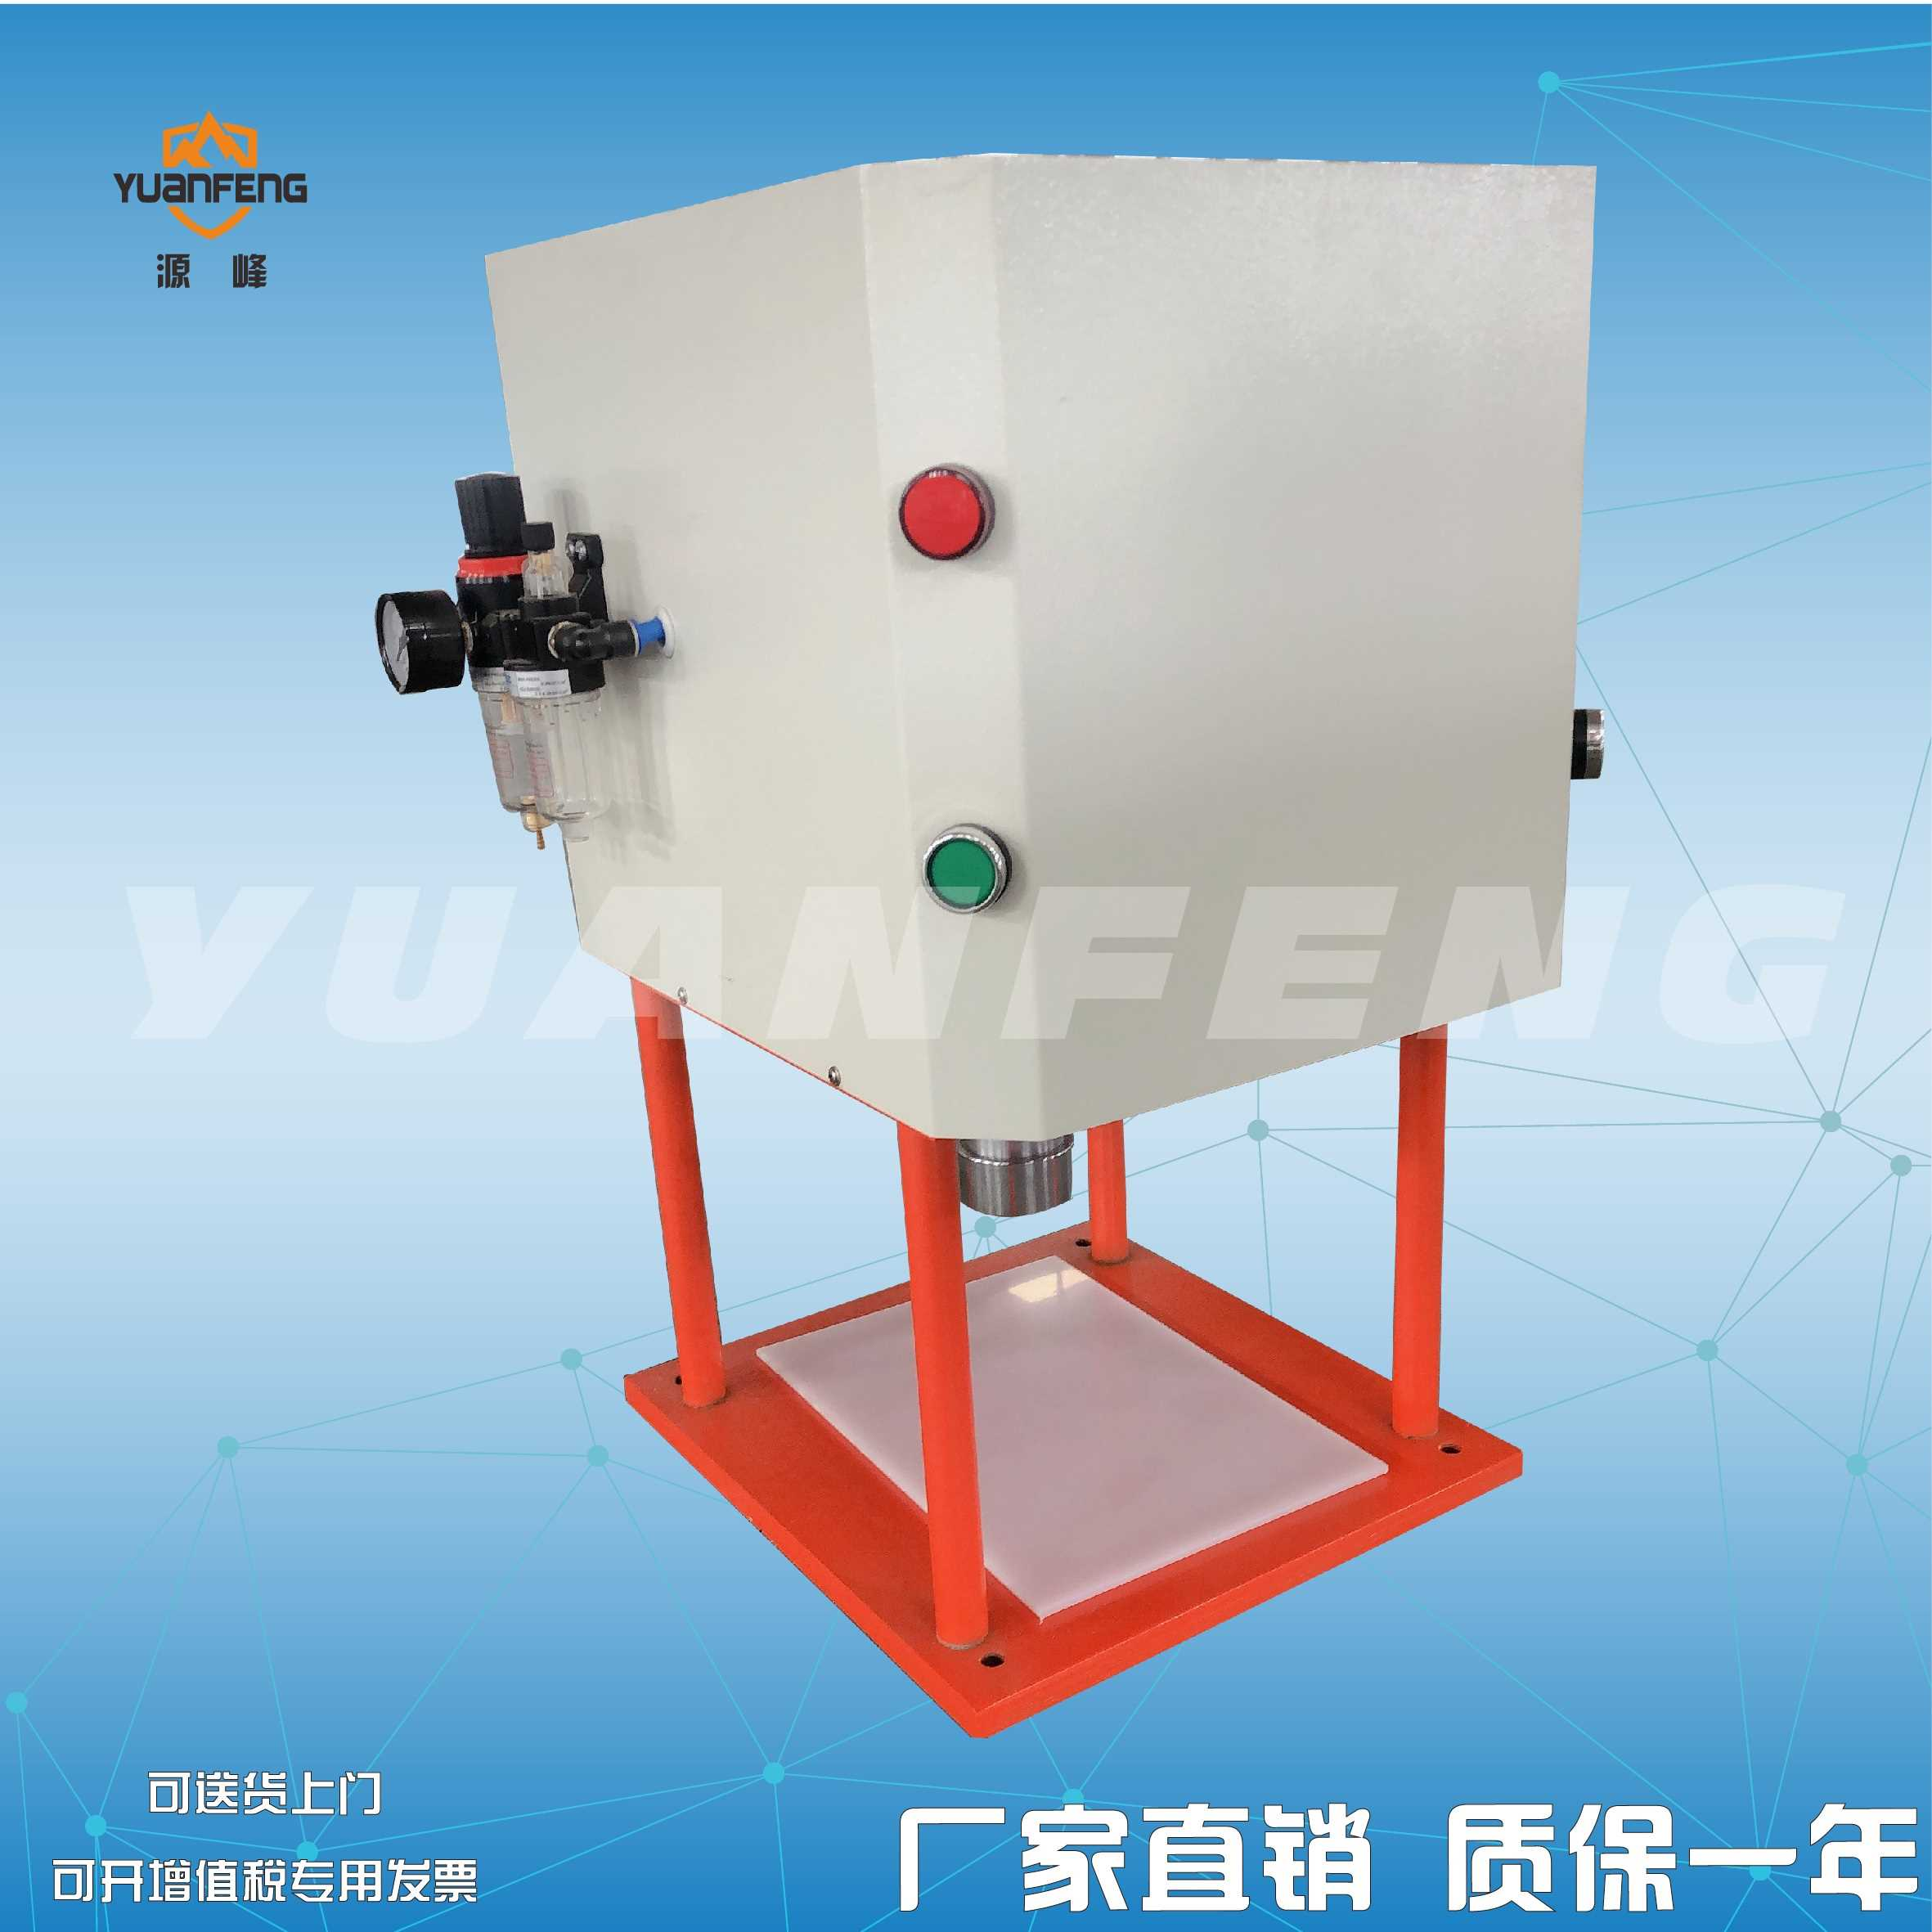 Yuanfeng waterproof membrane pneumatic punching machine, pneumatic cutting prototype, factory direct pneumatic punching machine